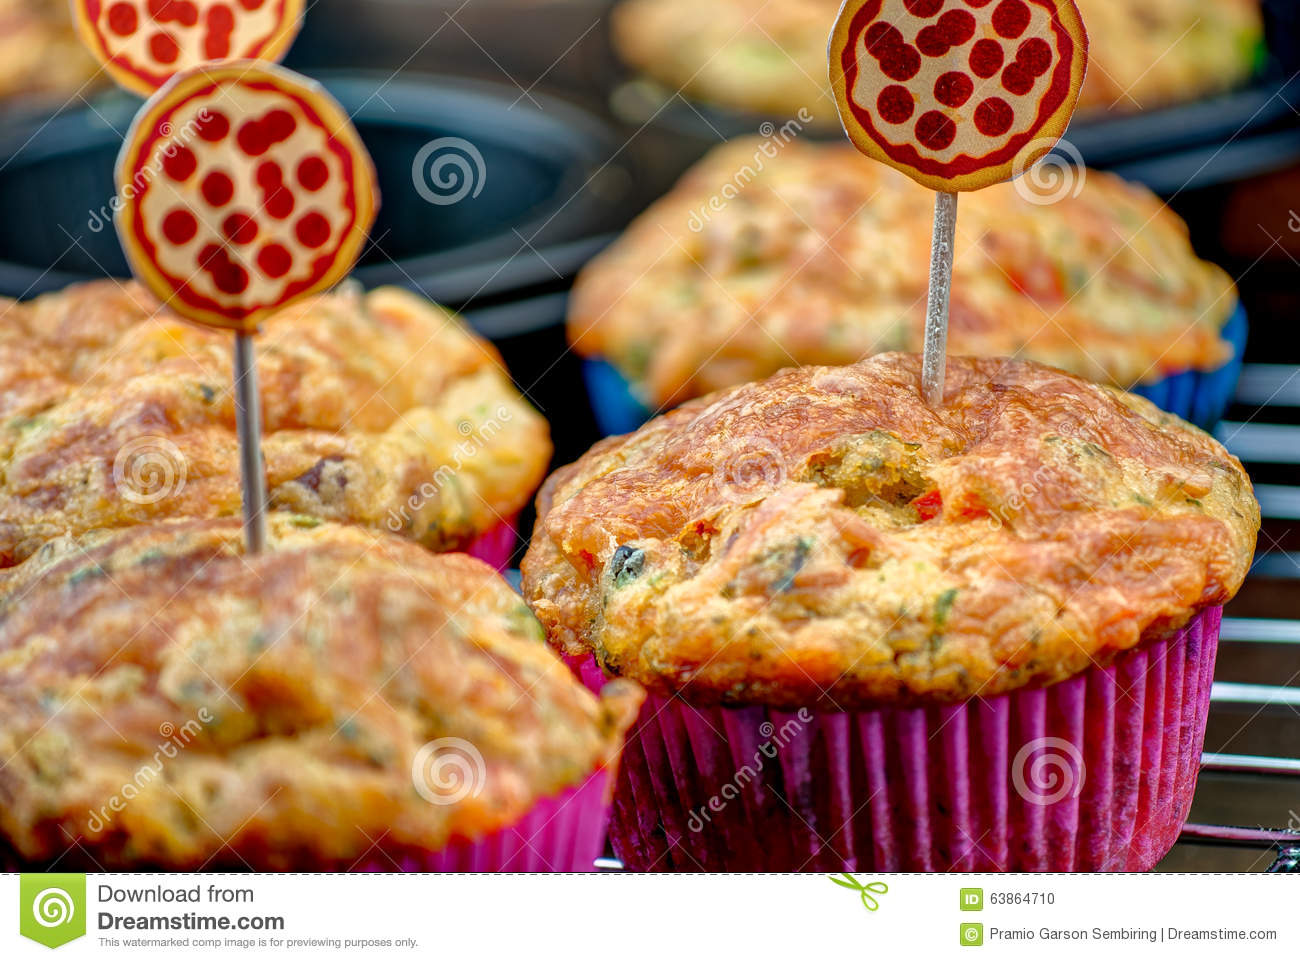 Selbst gemachter Pizza-Muffin-Snack